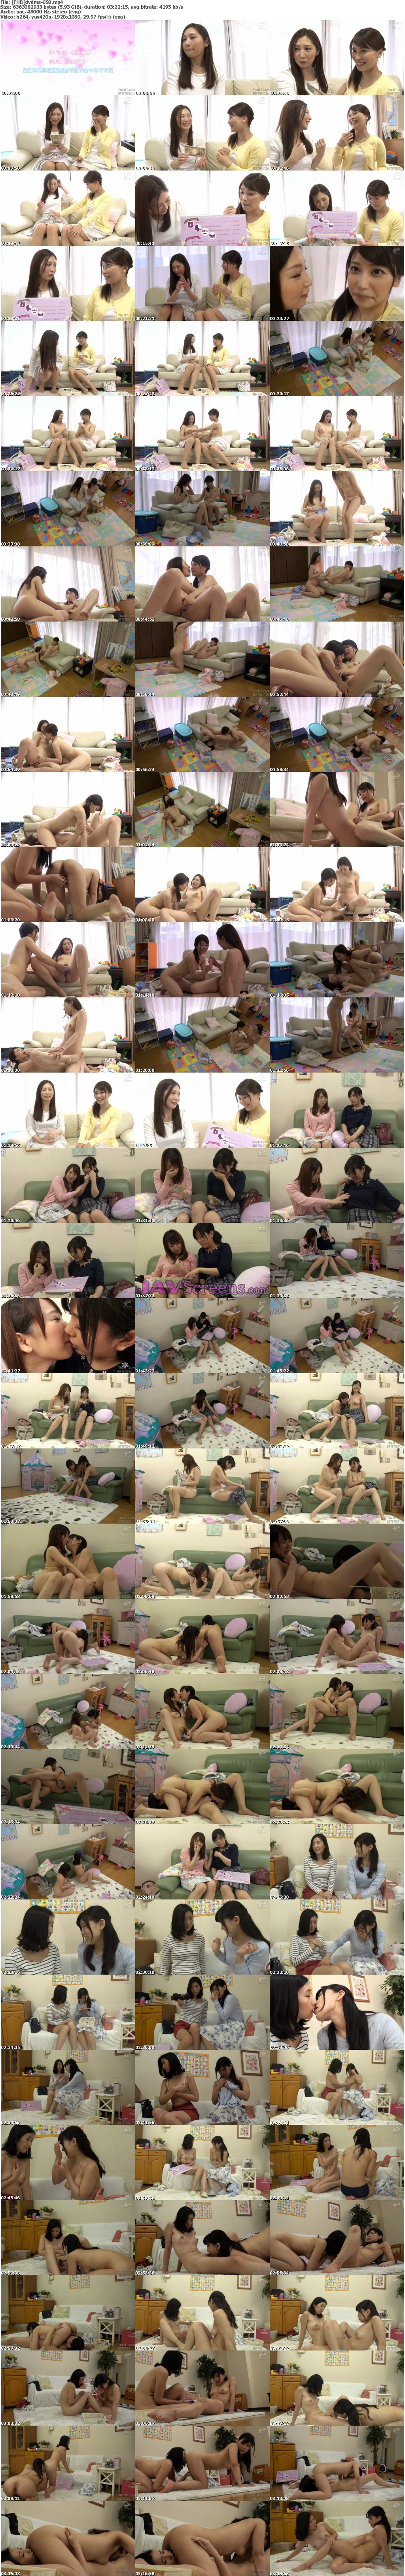 DVDMS-058.jpg - JAV Screenshot